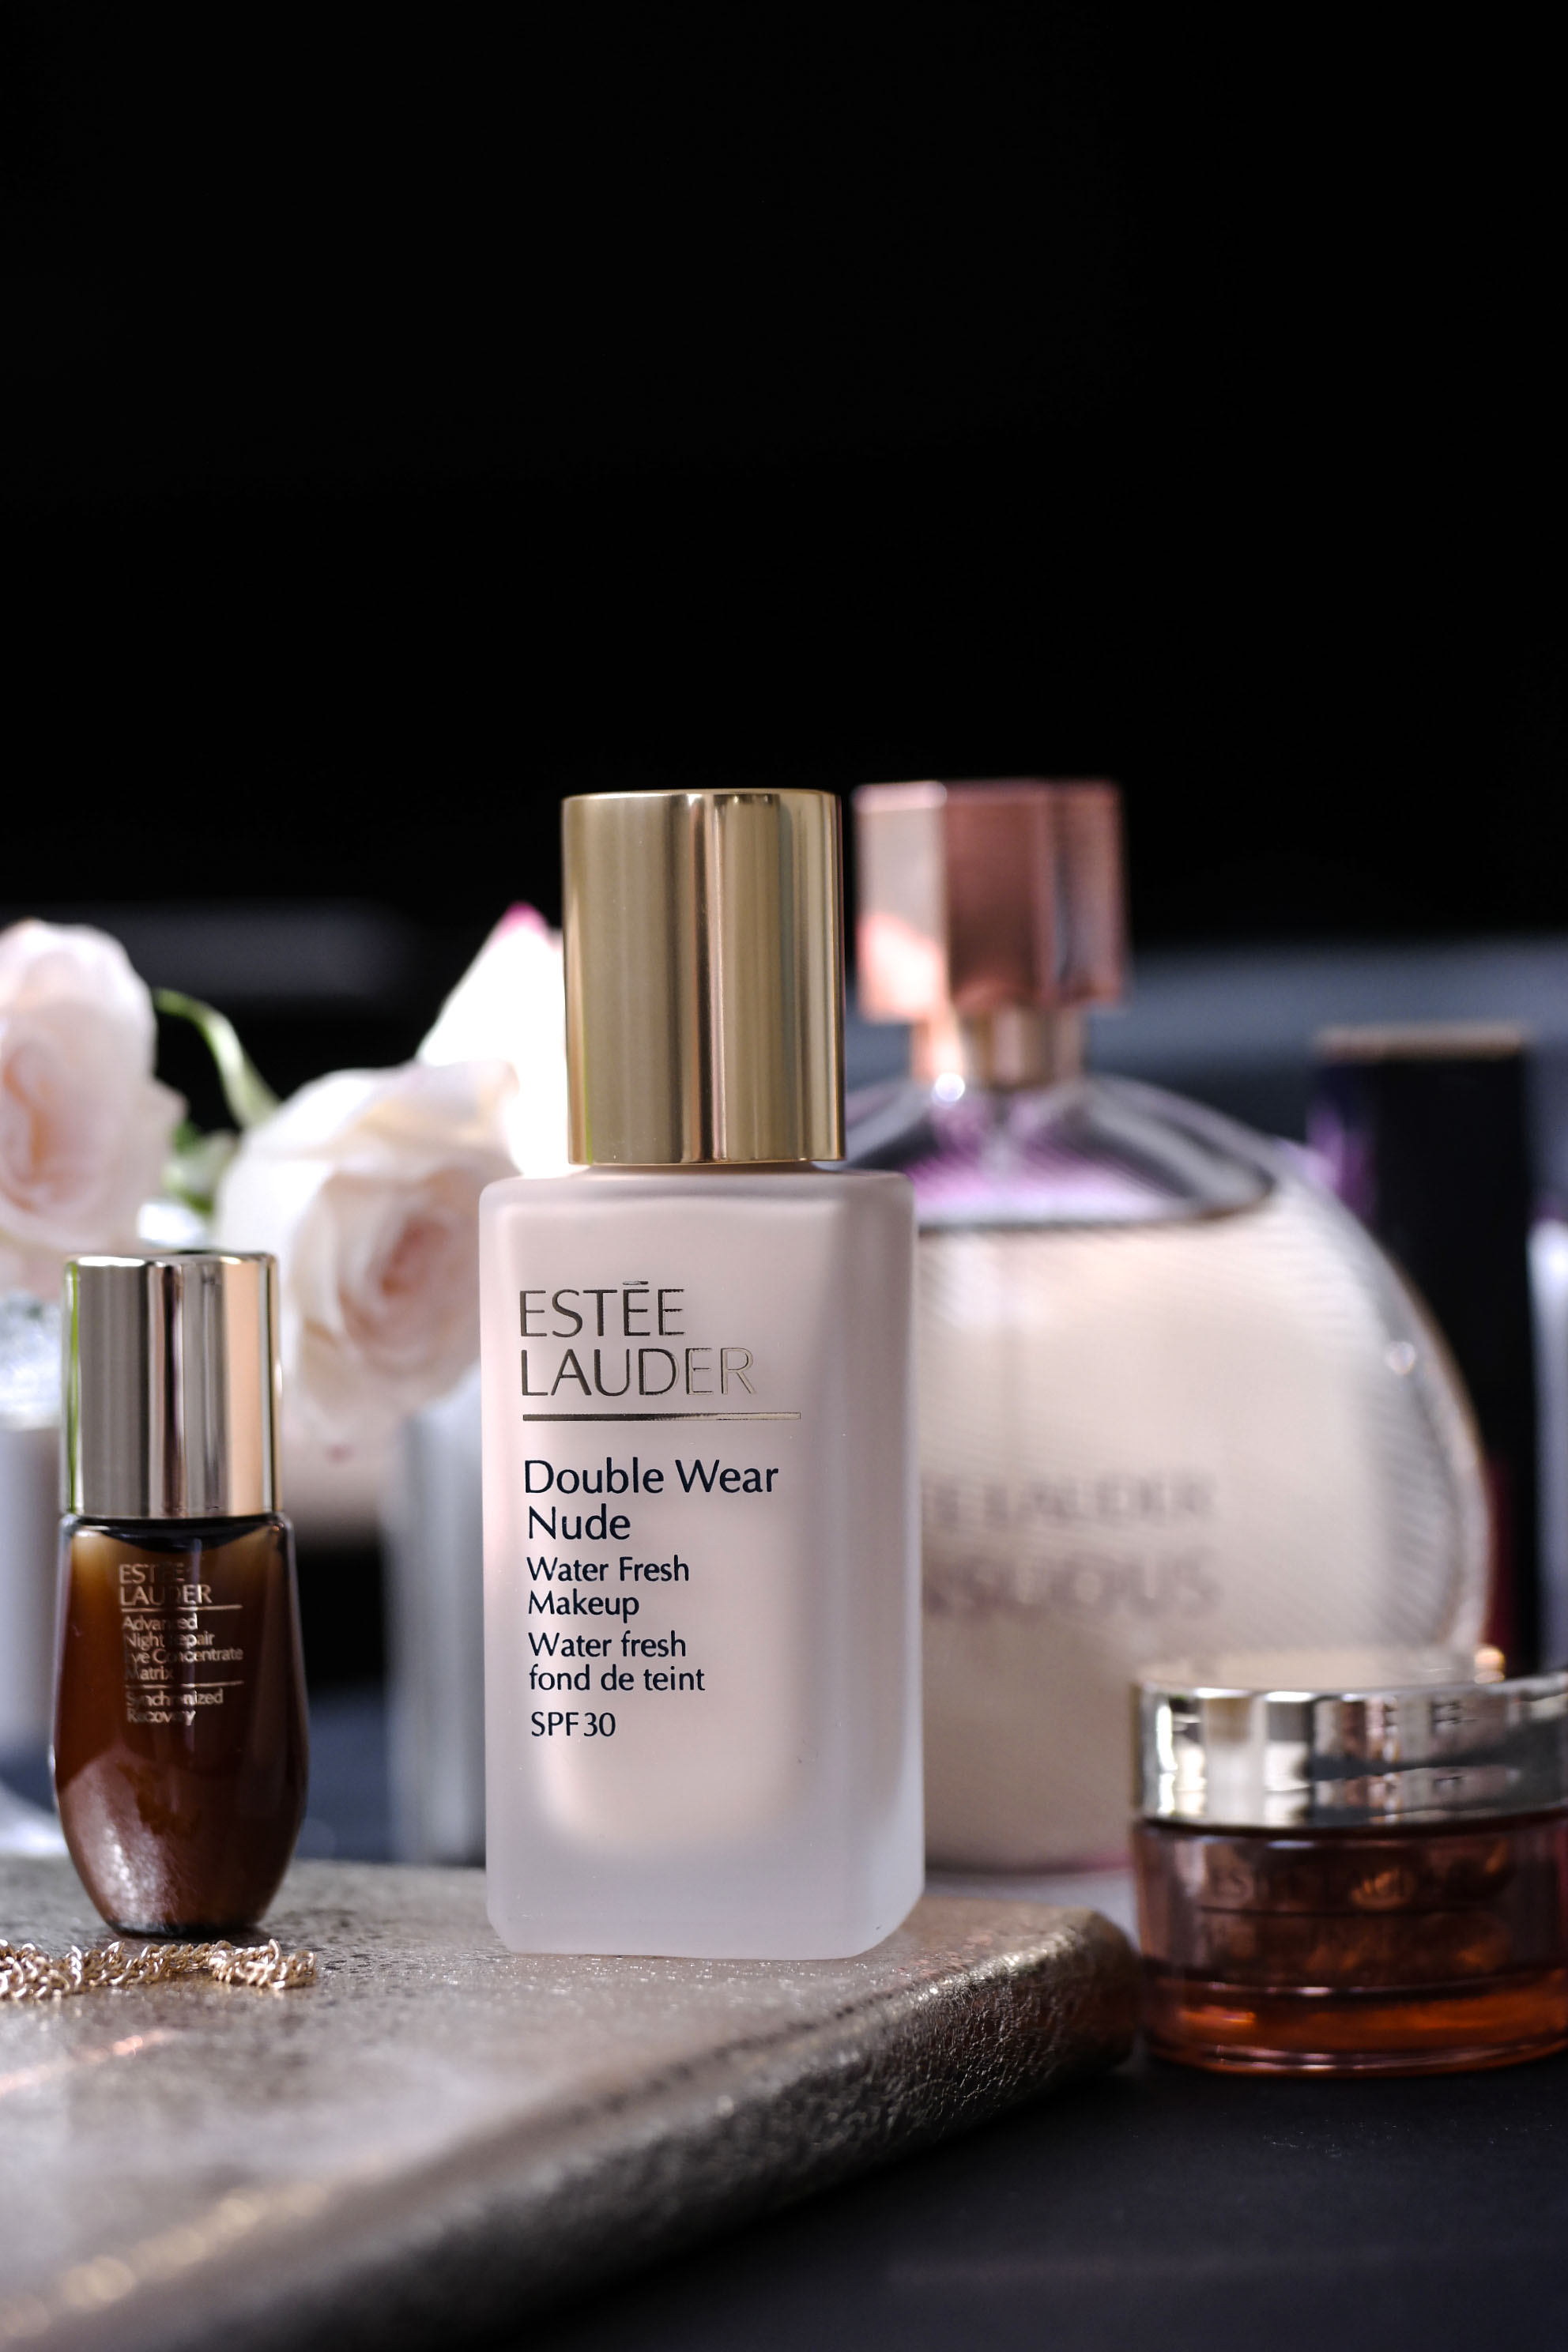 ESTÉE LAUDER ESTÉE LAUDER Double Wear Water Fresh Nude